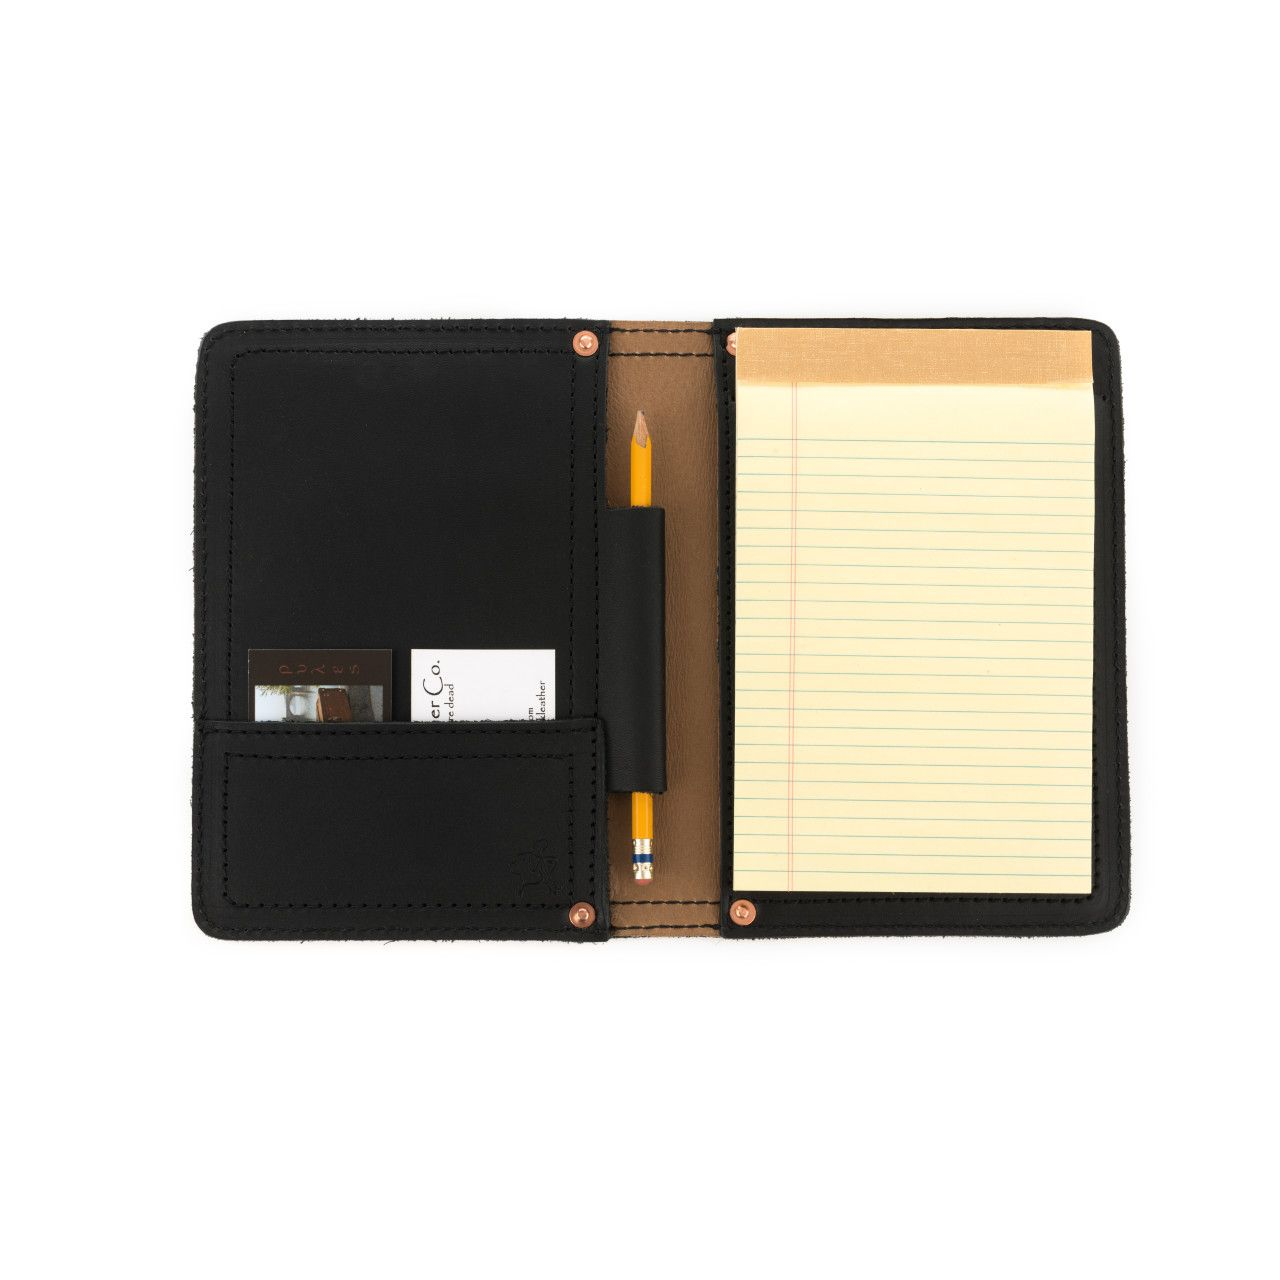 Notepad, pencil, business cards locaed in leather notepad cover small in black leather